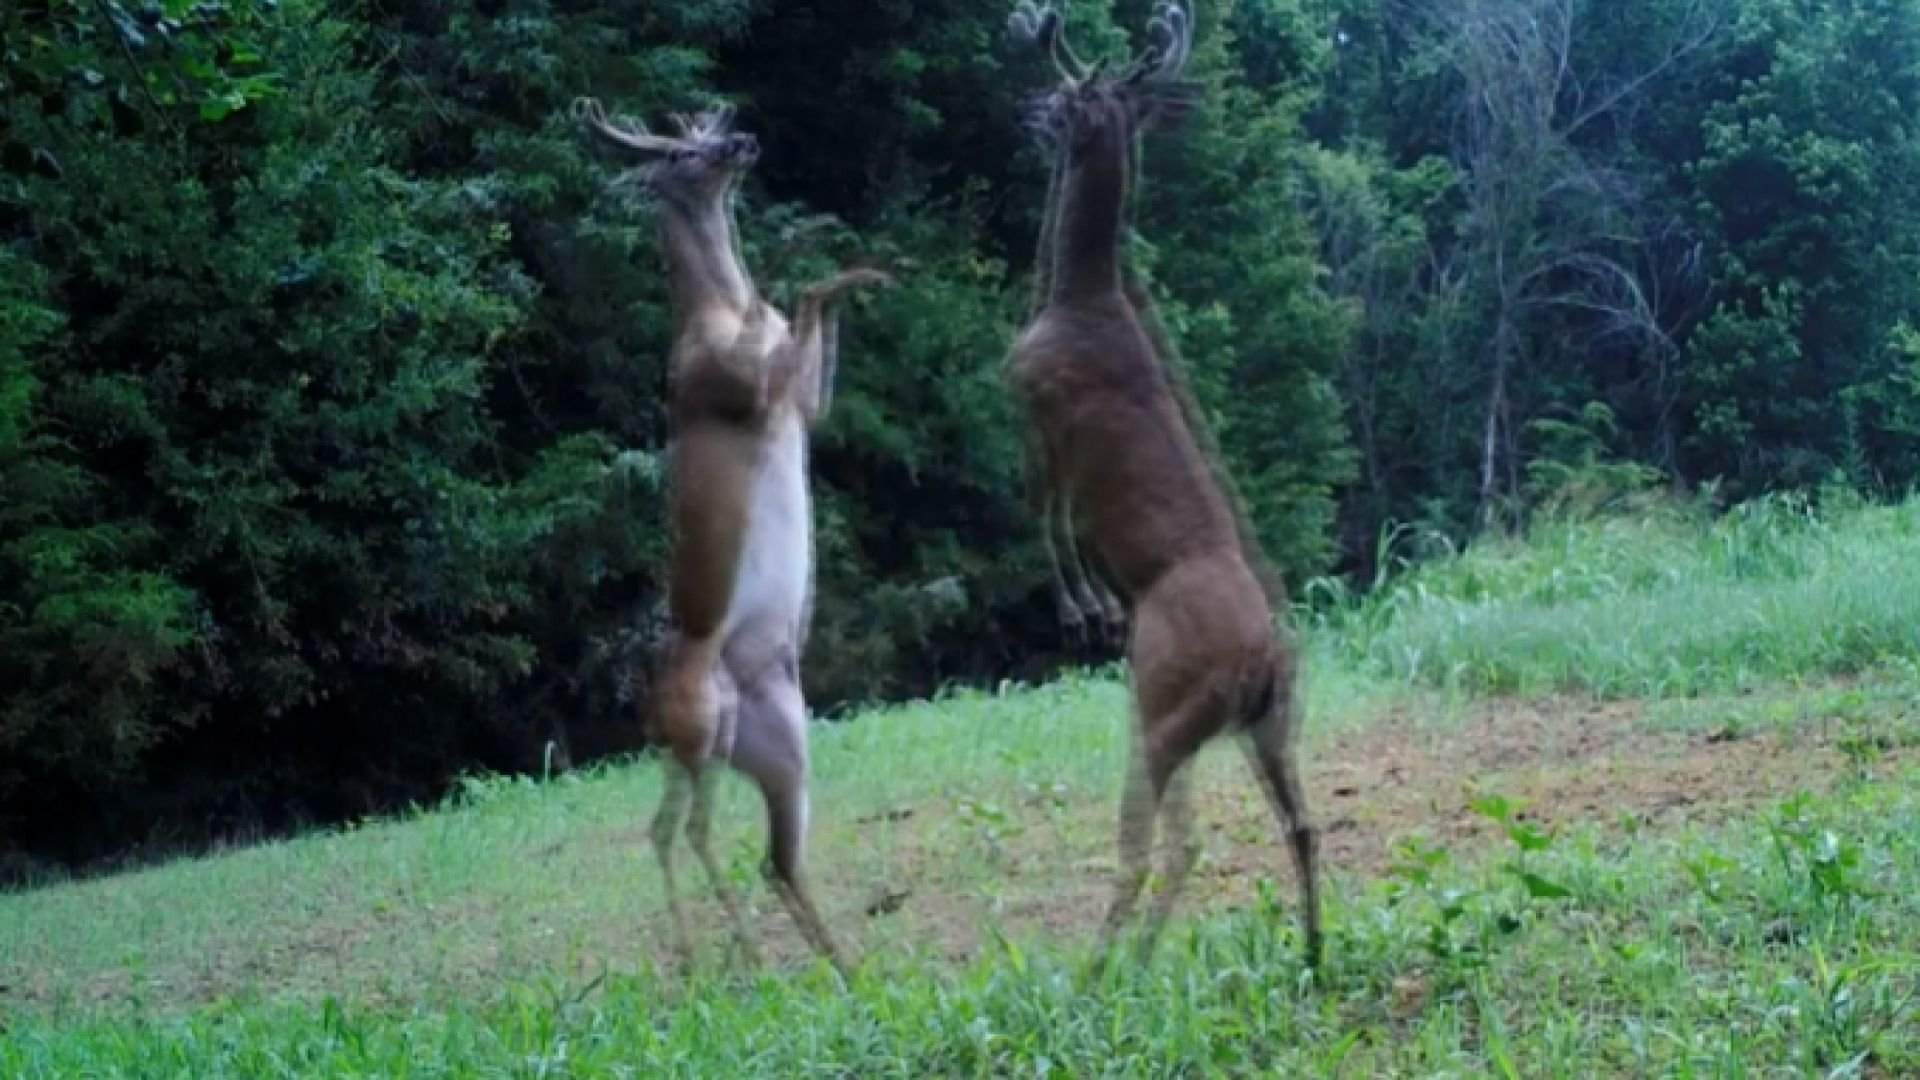 An officer with the Tennessee Wildlife Resources Agency captures on camera in a most unusual fight between two deer.